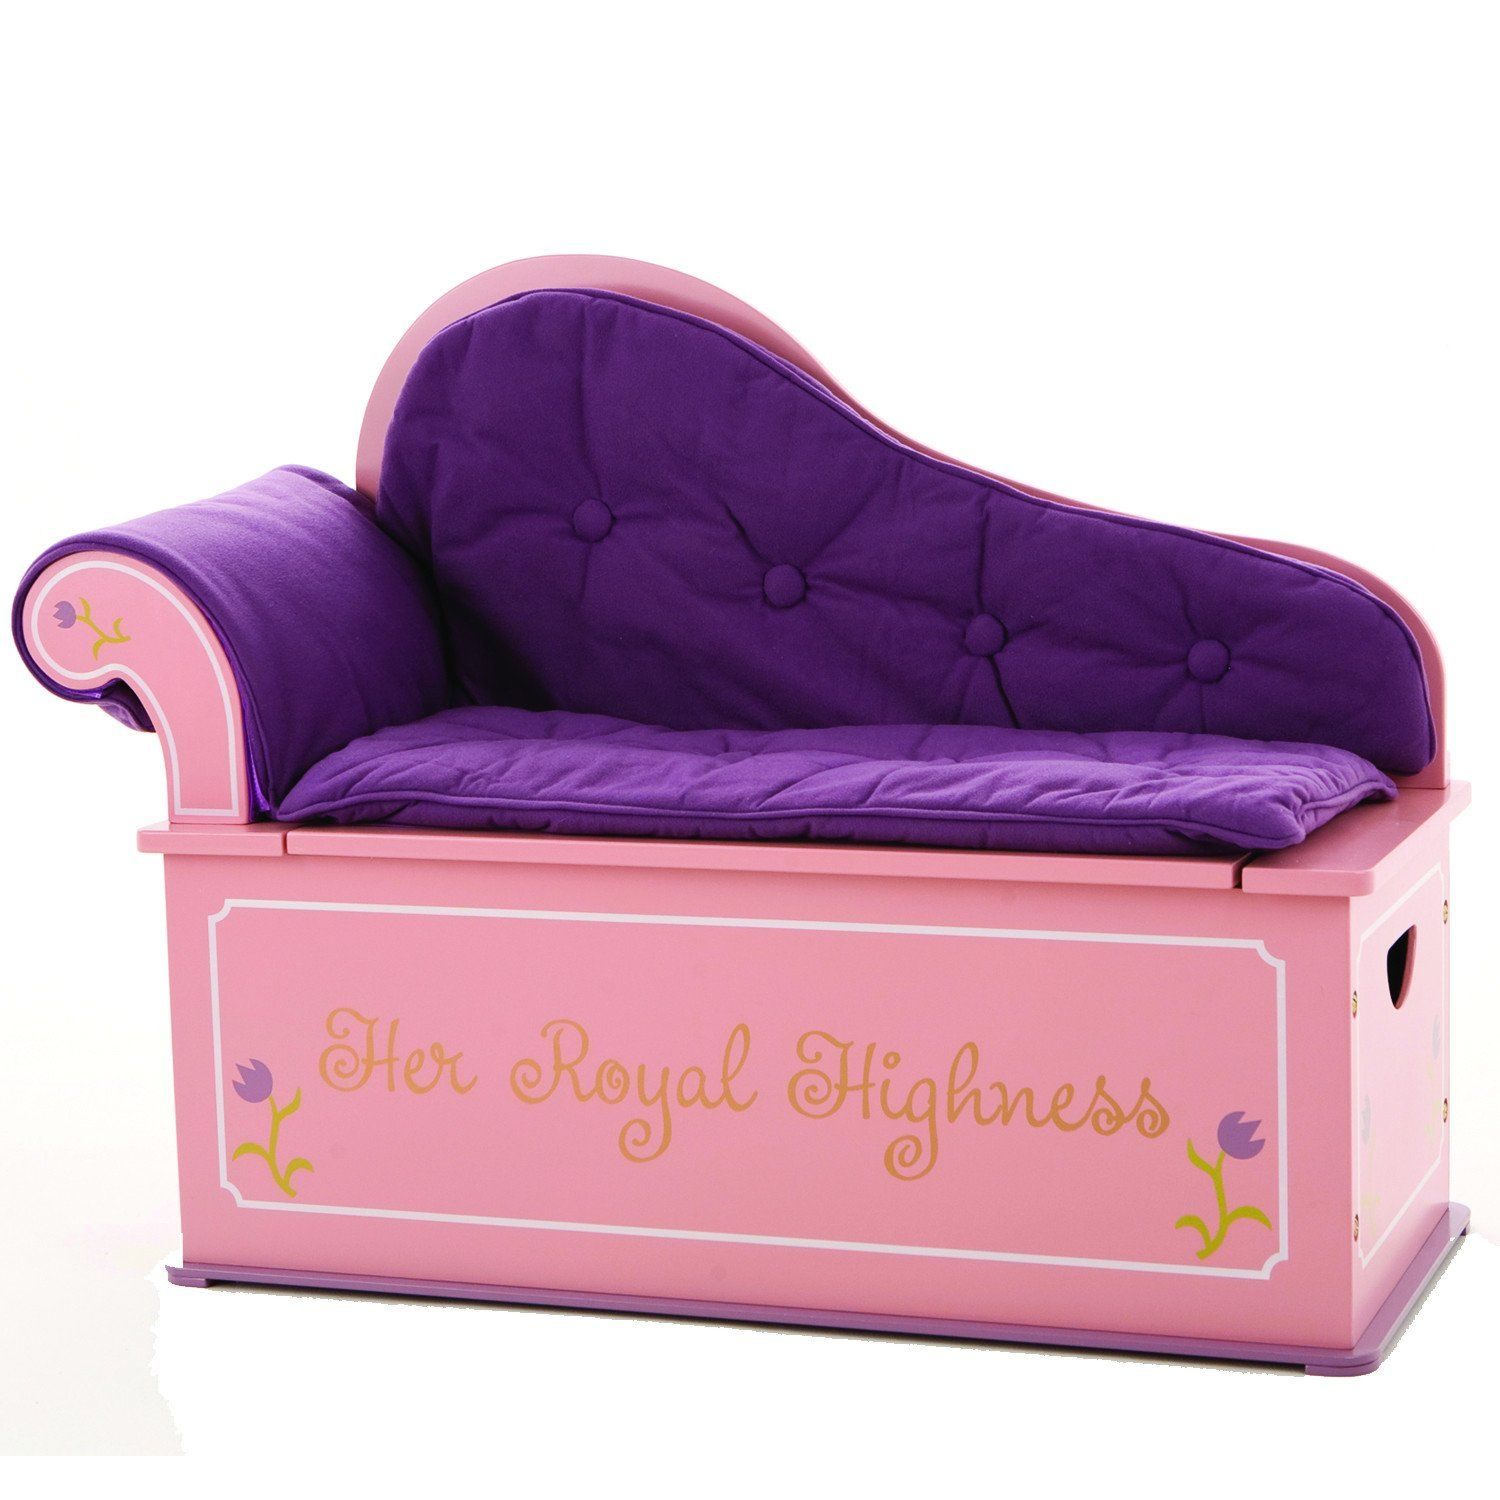 Levels Of Discovery Princess Fainting Couch W Storage